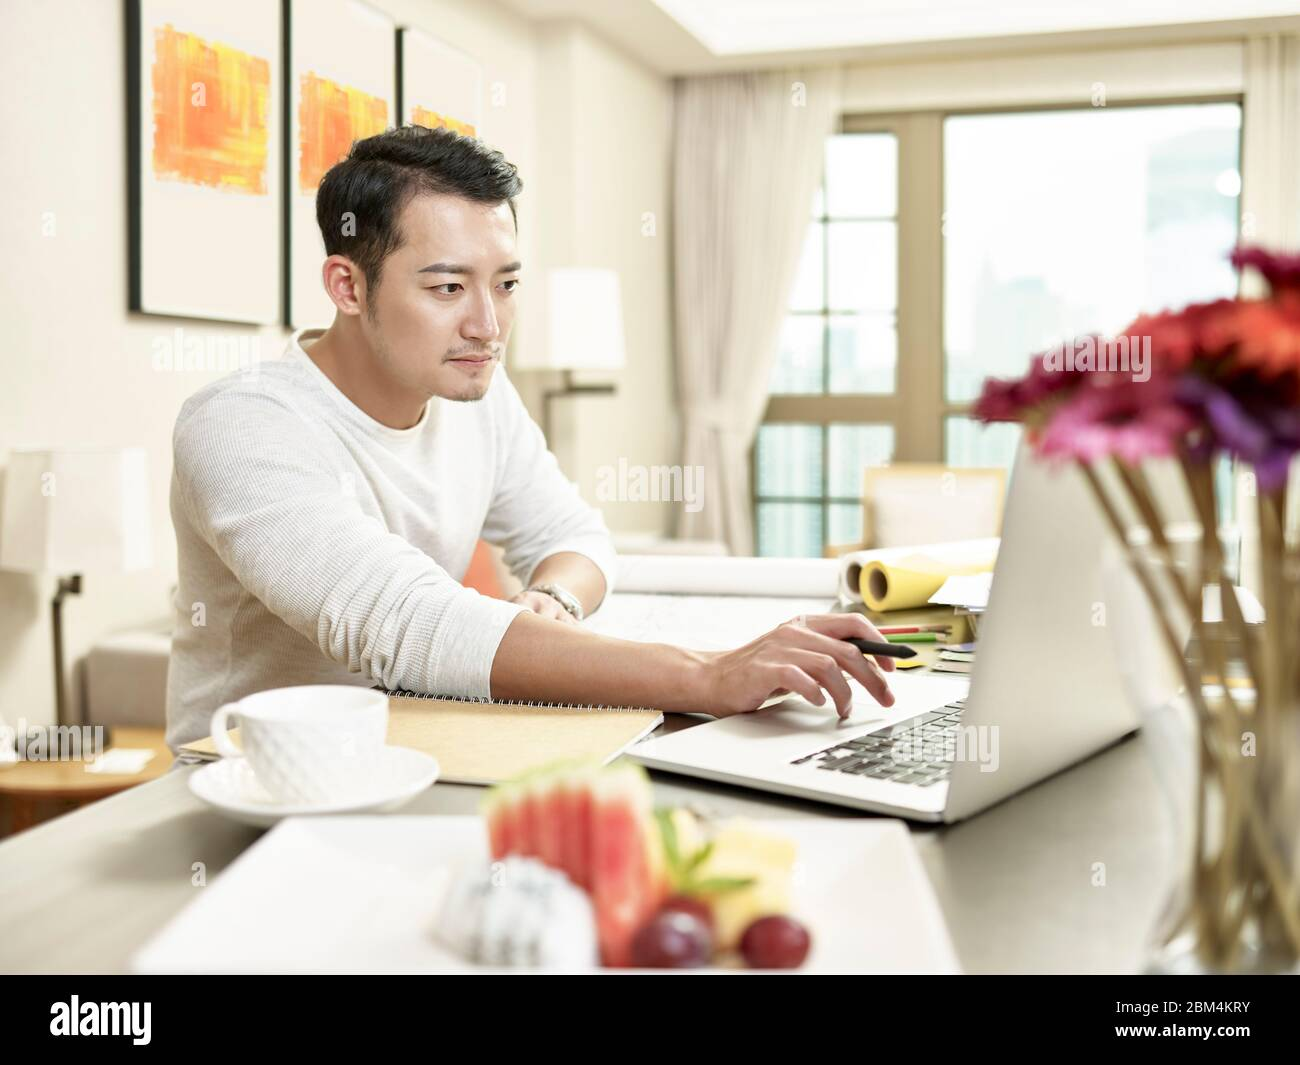 young asian businessman working from home sitting at kitchen counter looking at laptop computer (artwork in background digitally altered) Stock Photo